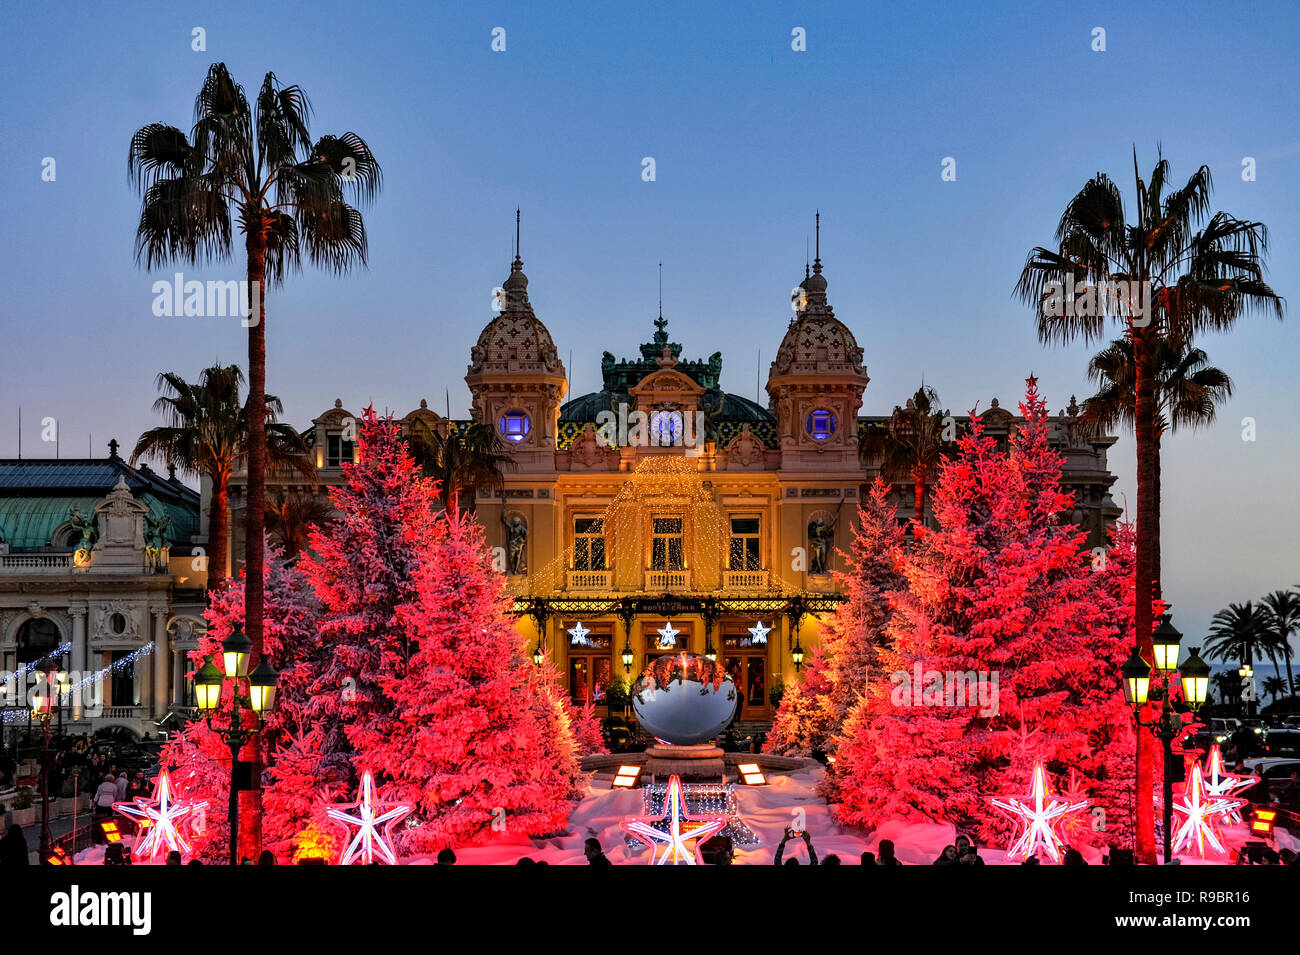 La France. Principauté de Monaco (98). Décoration de Noël en face de Casino de Monte-Carlo Photo Stock